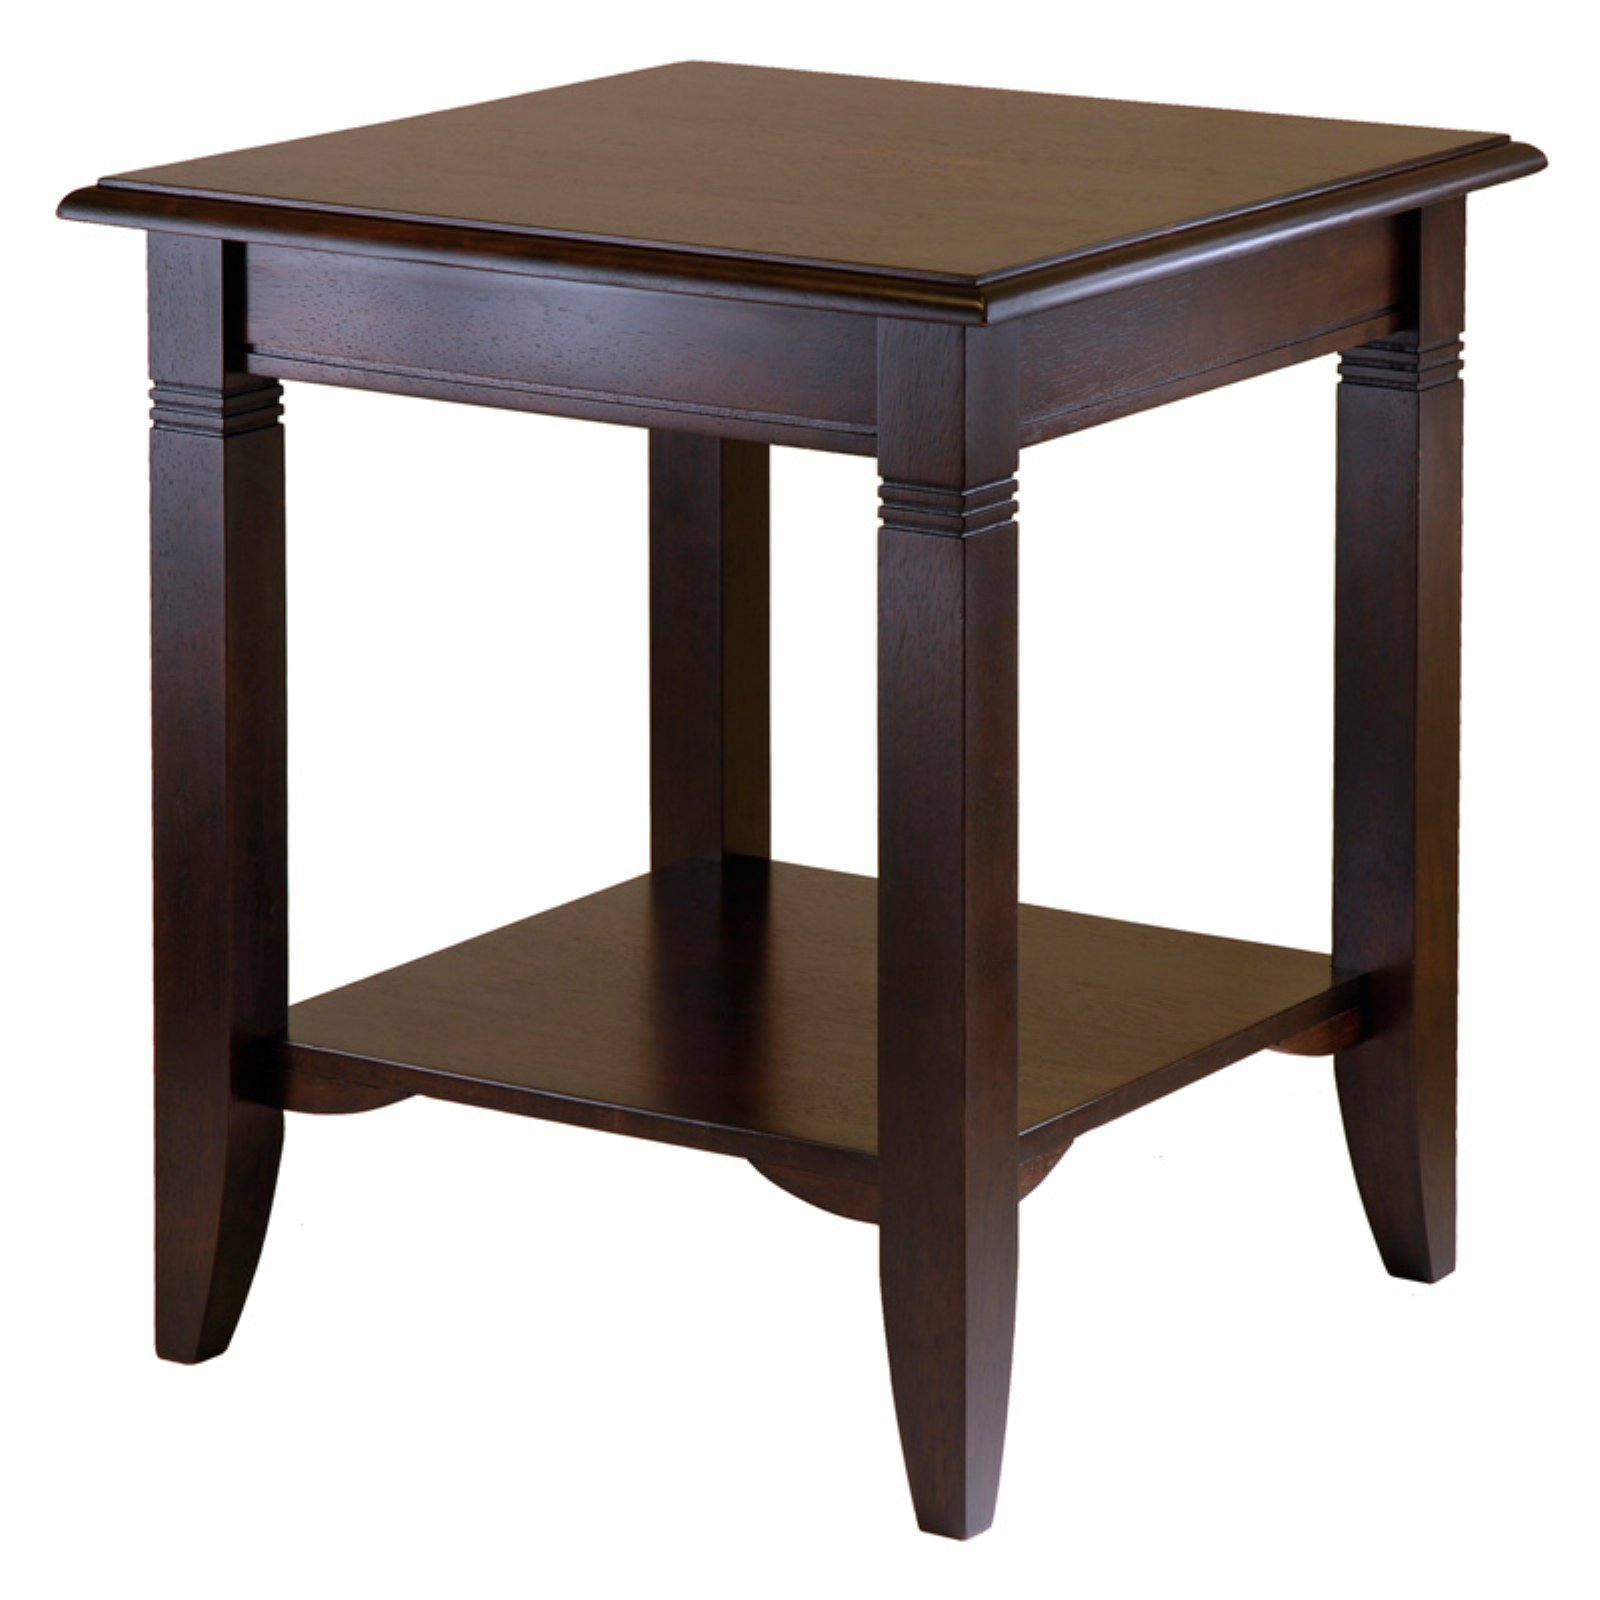 Nolan Coffee Table & End Tables Value Bundle Cappuccino Walmart